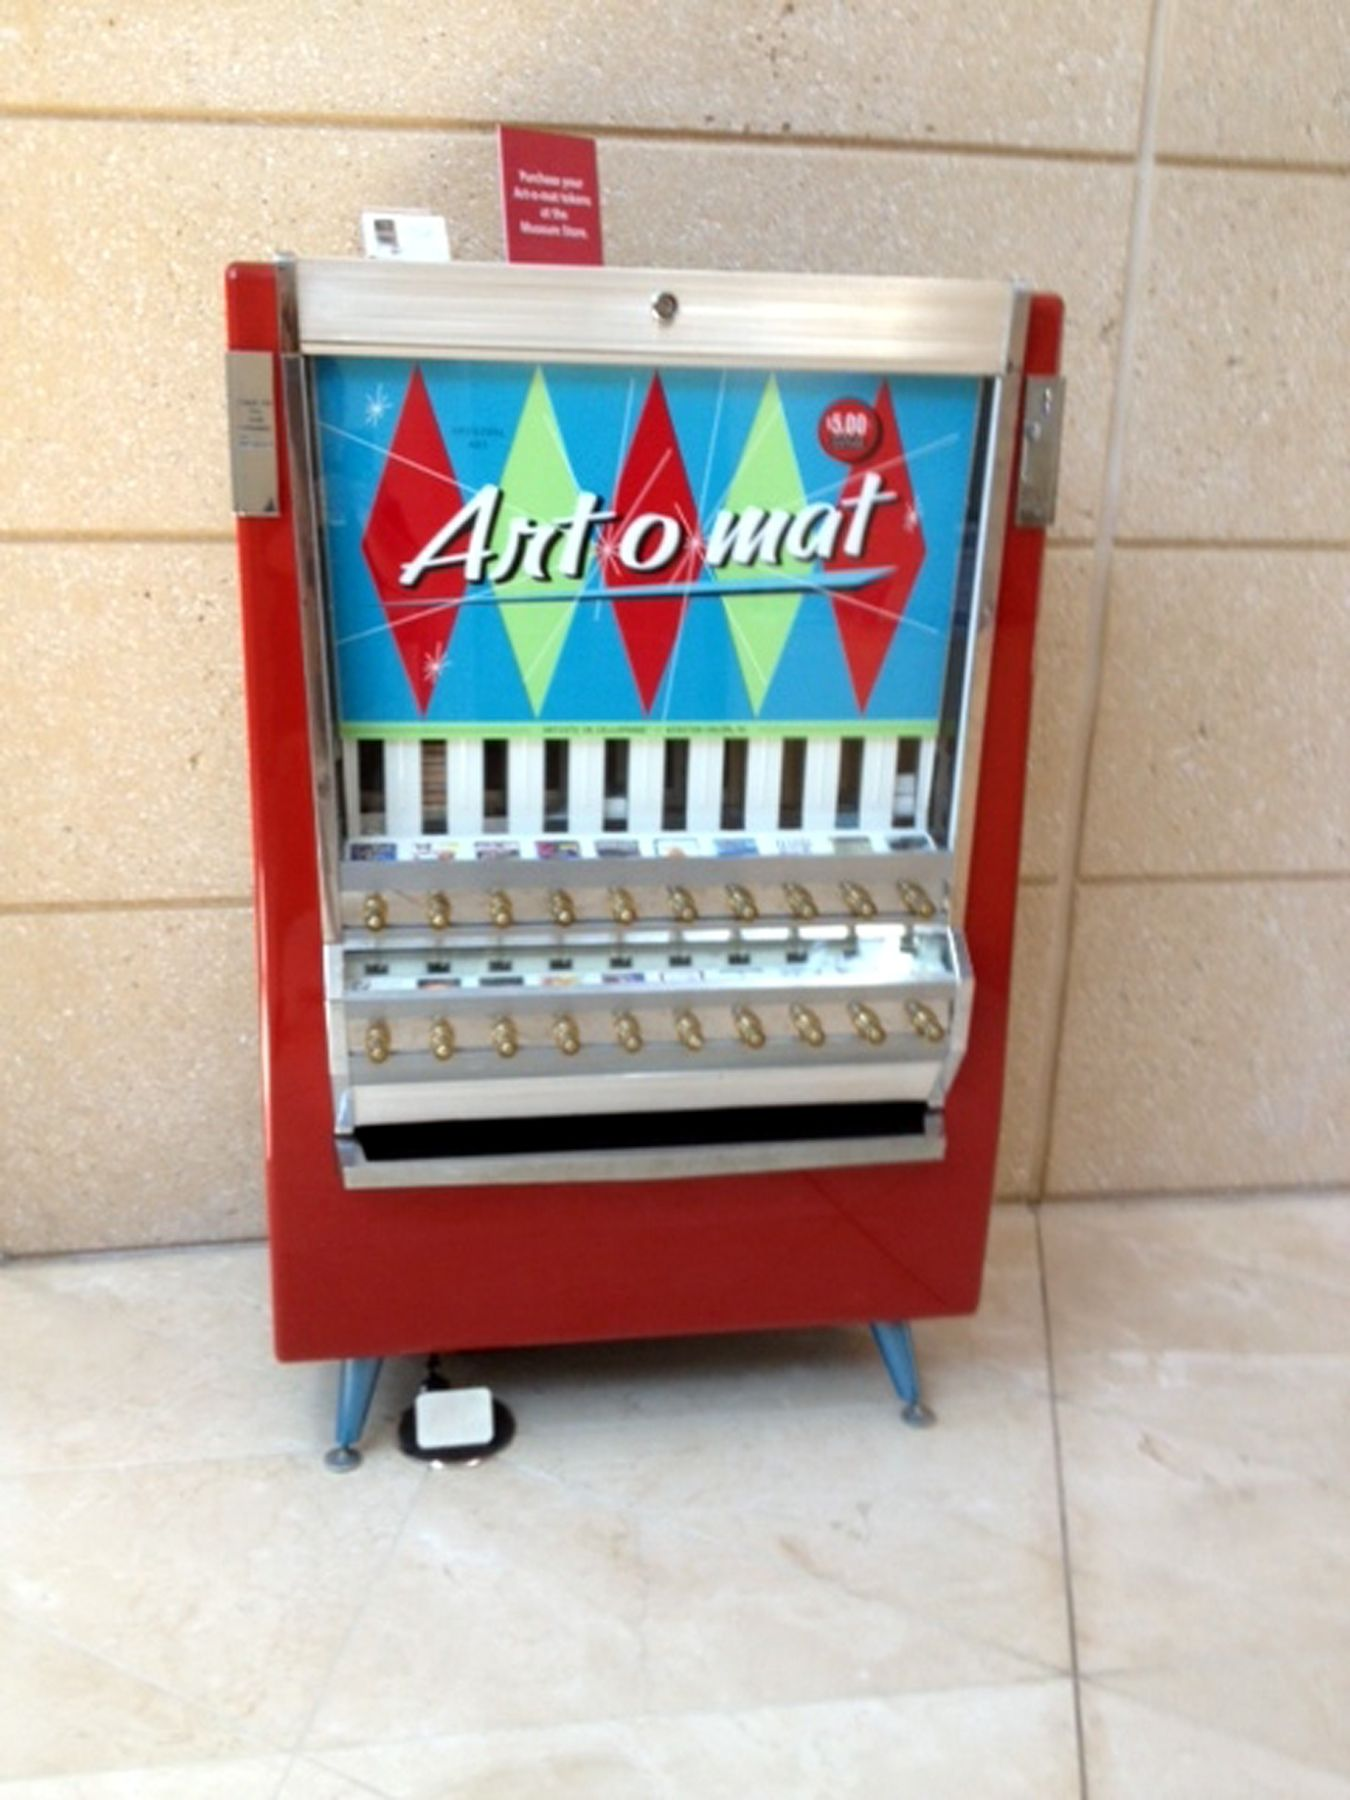 The Art-o-mat at the Museum of Fine Arts in St. Petersburg. For five dollars you get a small piece of hand crafted art dispensed from this converted cigarette machine. A cool reinvention!